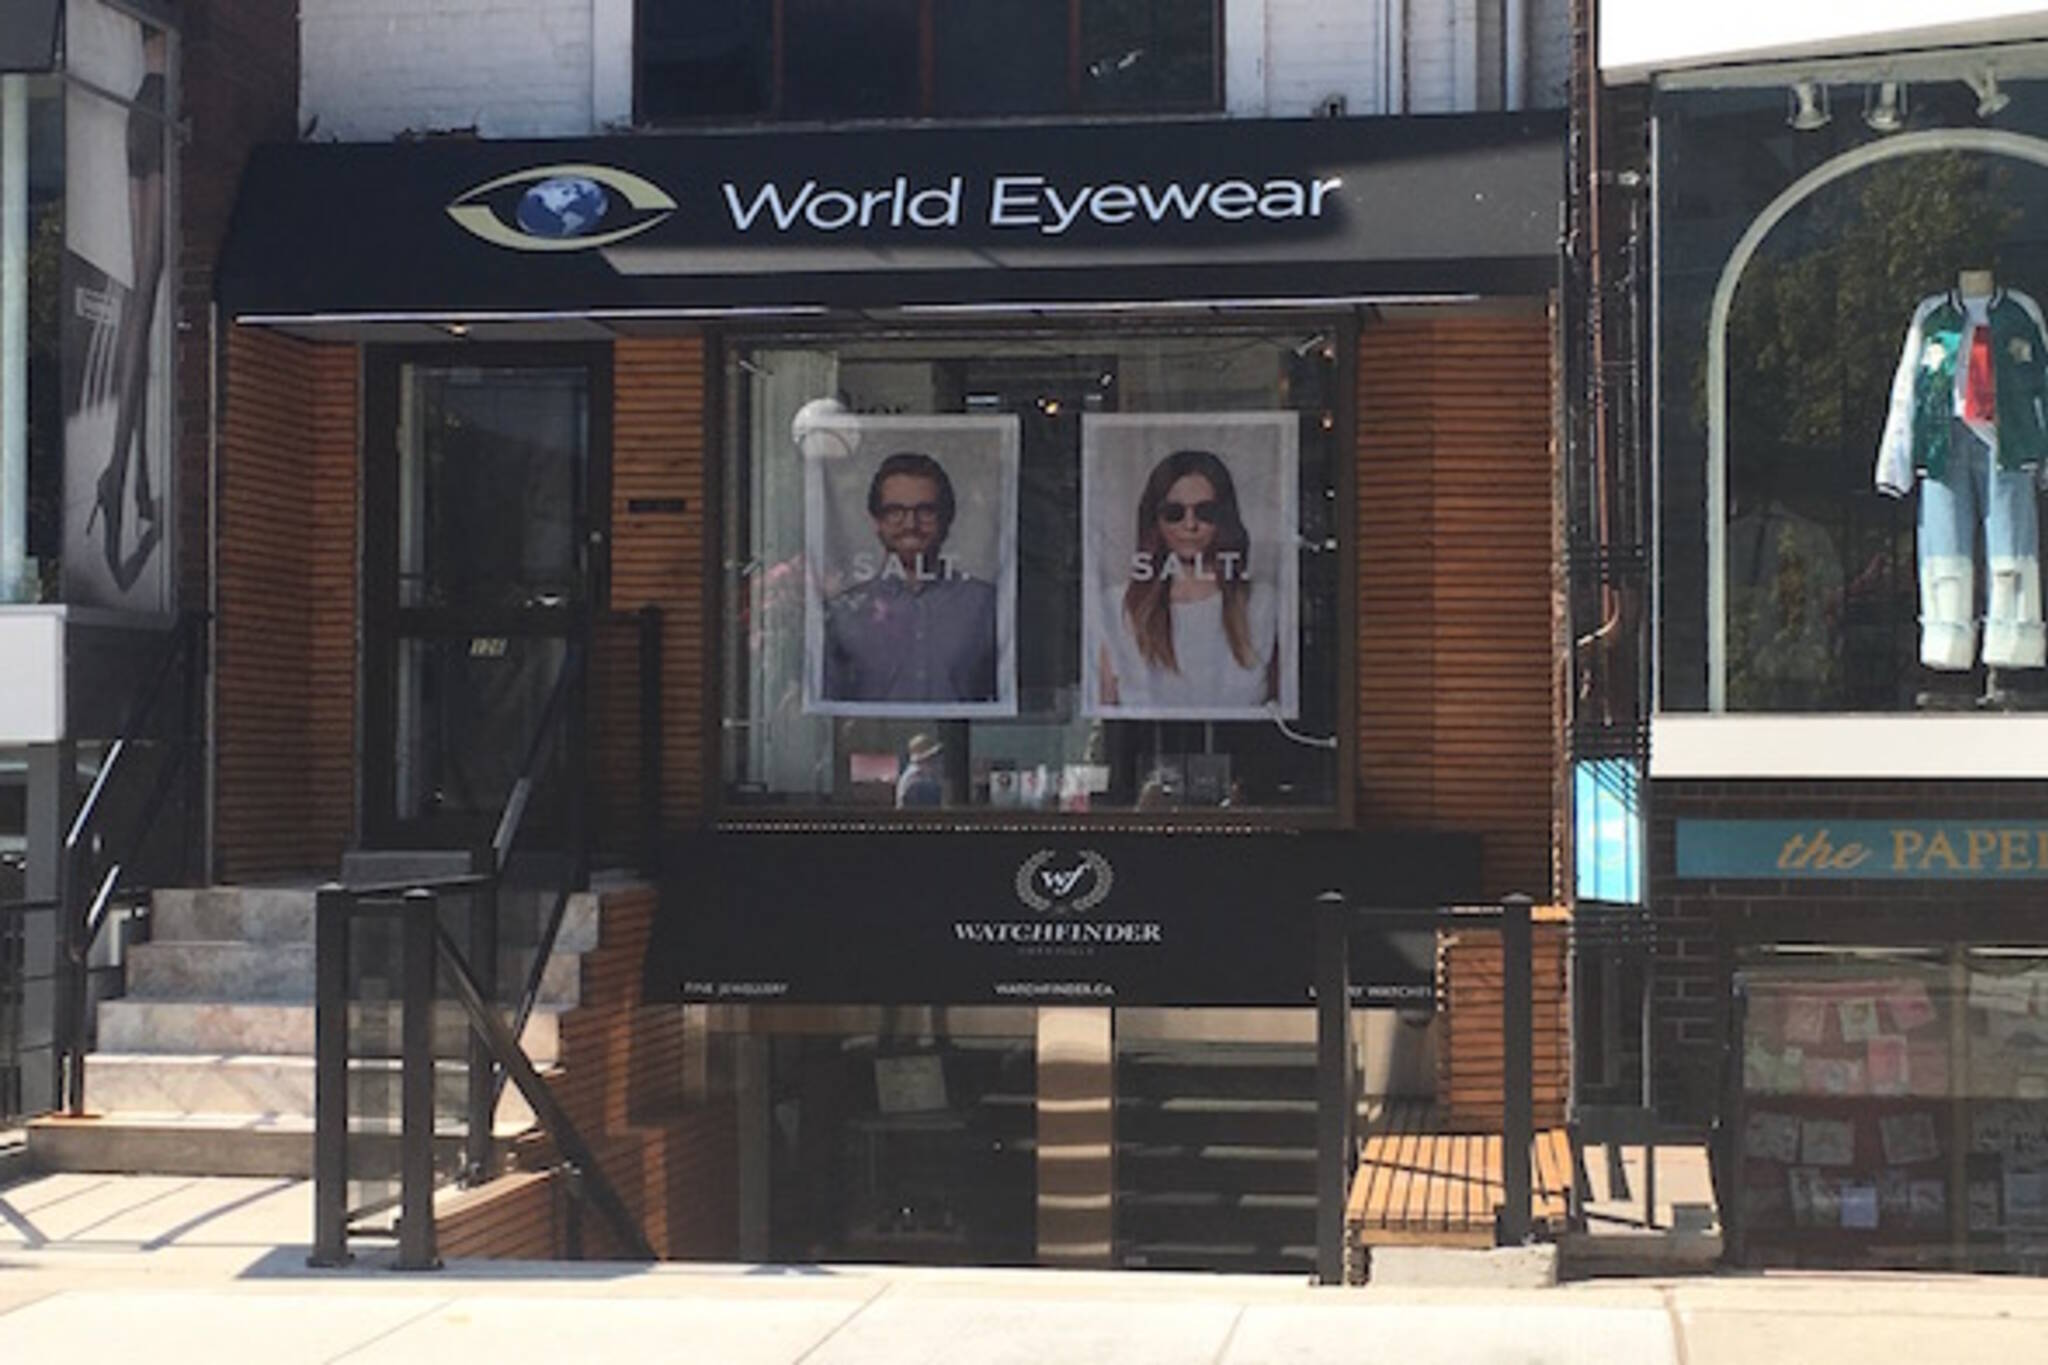 World Eyewear Toronto